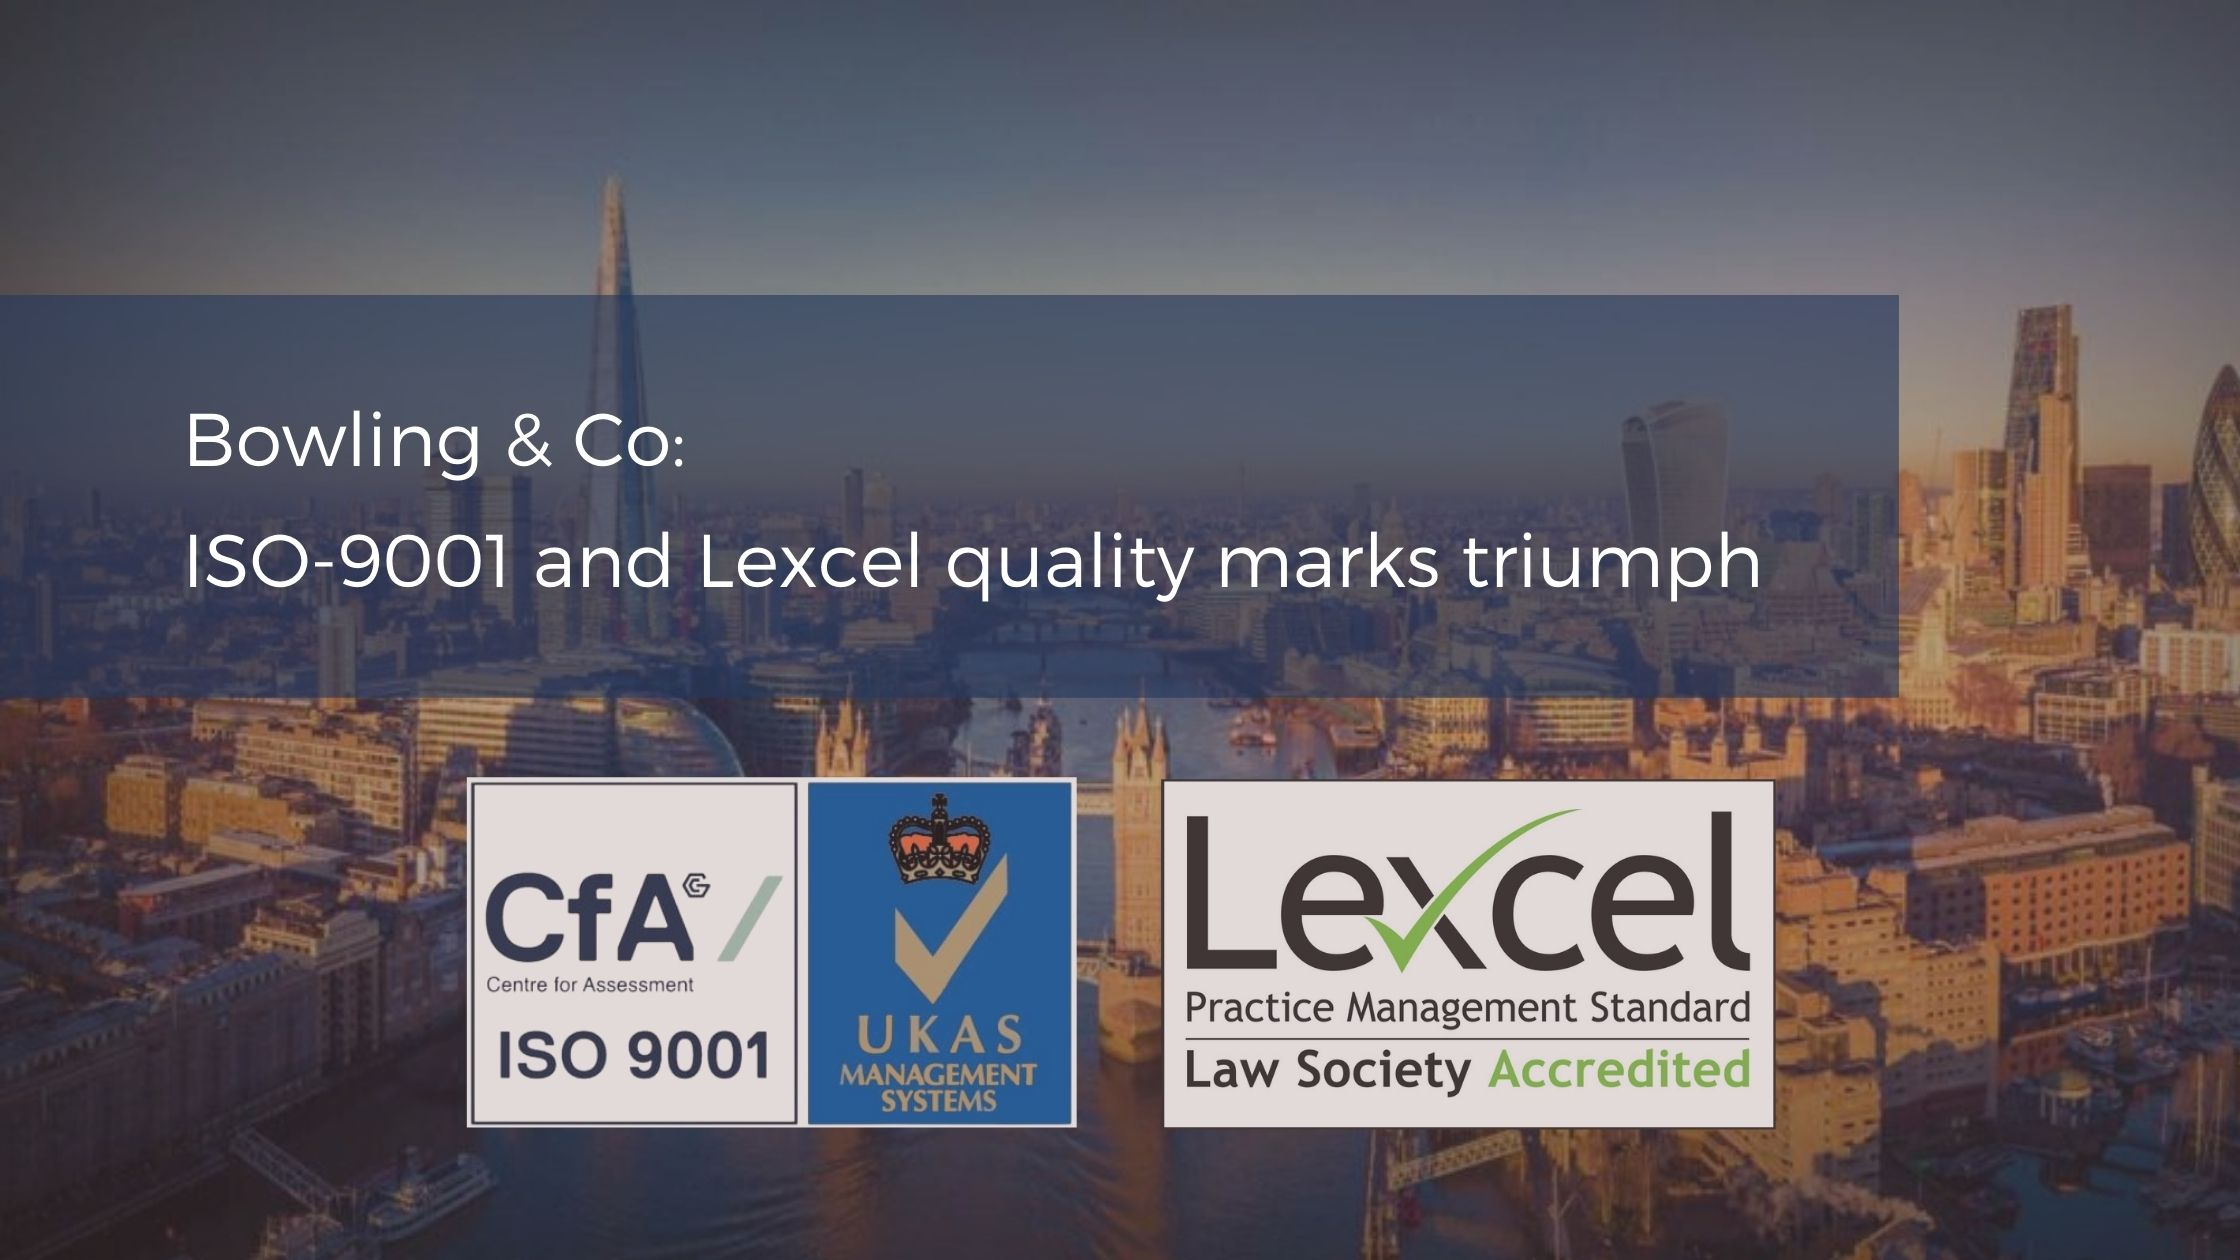 Bowling & Co achieve ISO-9001 and Lexcel quality mark accreditation